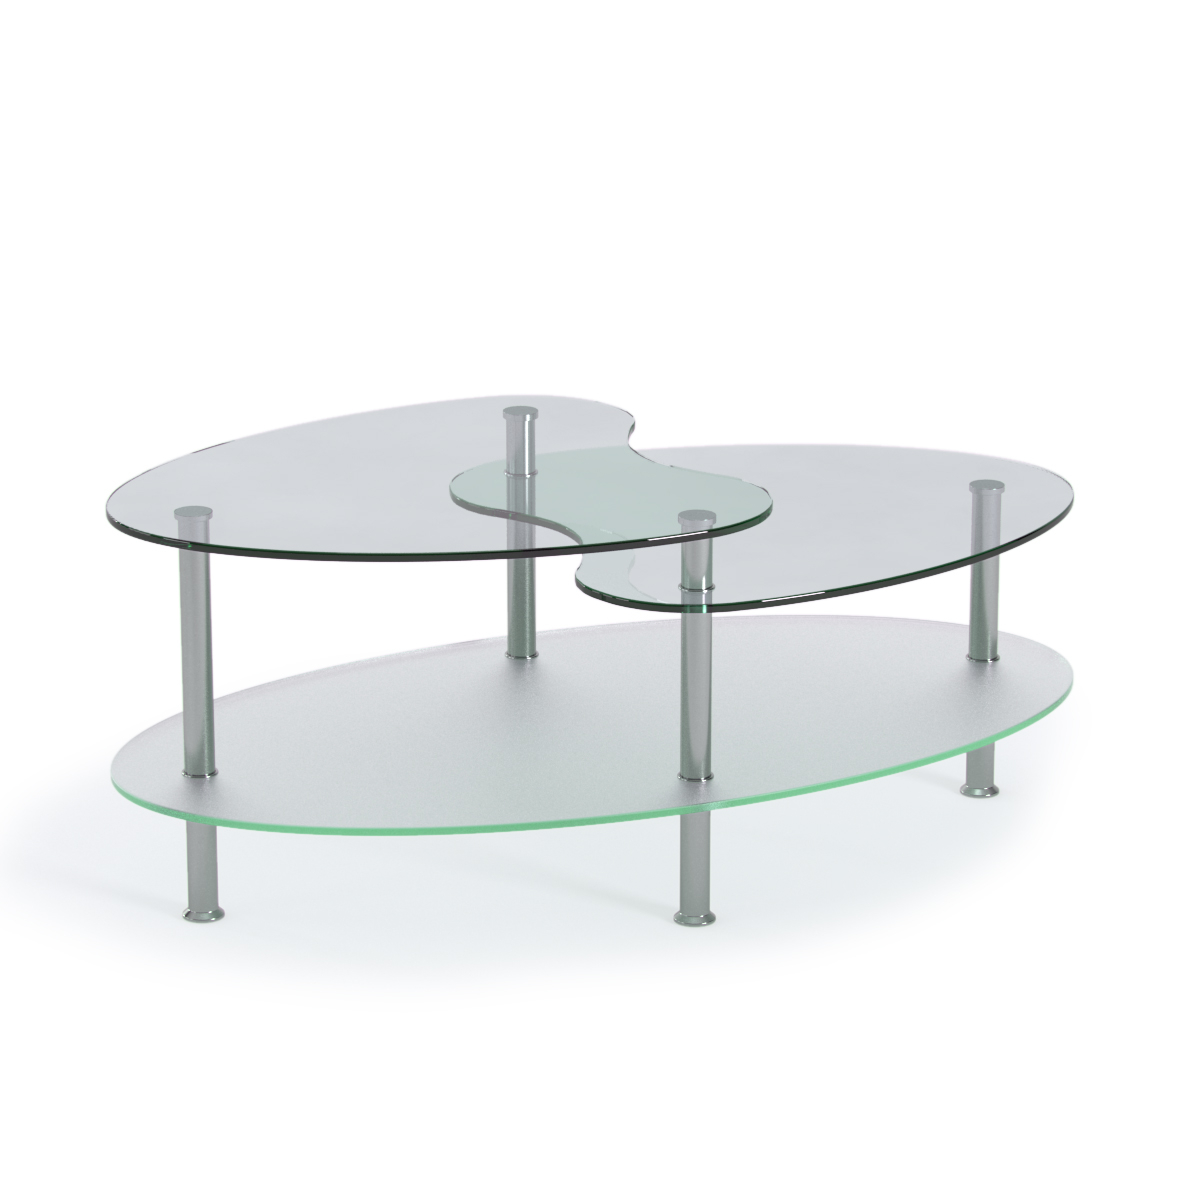 Becca 38 Inch Oval Two Tier Glass Coffee Table regarding sizing 1200 X 1200